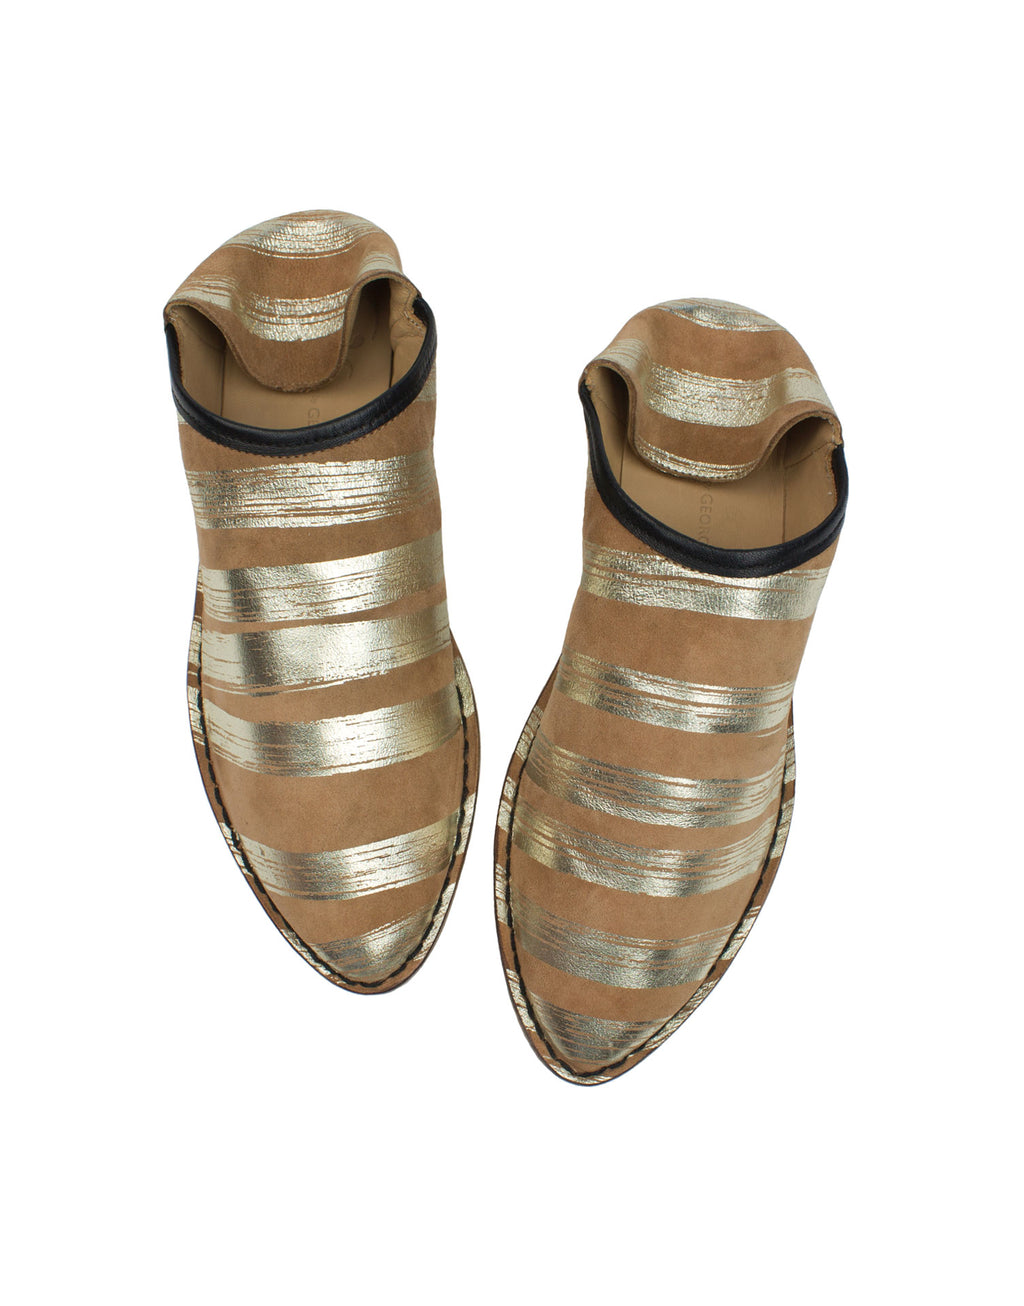 Designer leather slipper by Georgina Goodman in a camel suede with soft platino stripes. This uber comfortable slipper is an outdoor shoe with an indoor attitude.